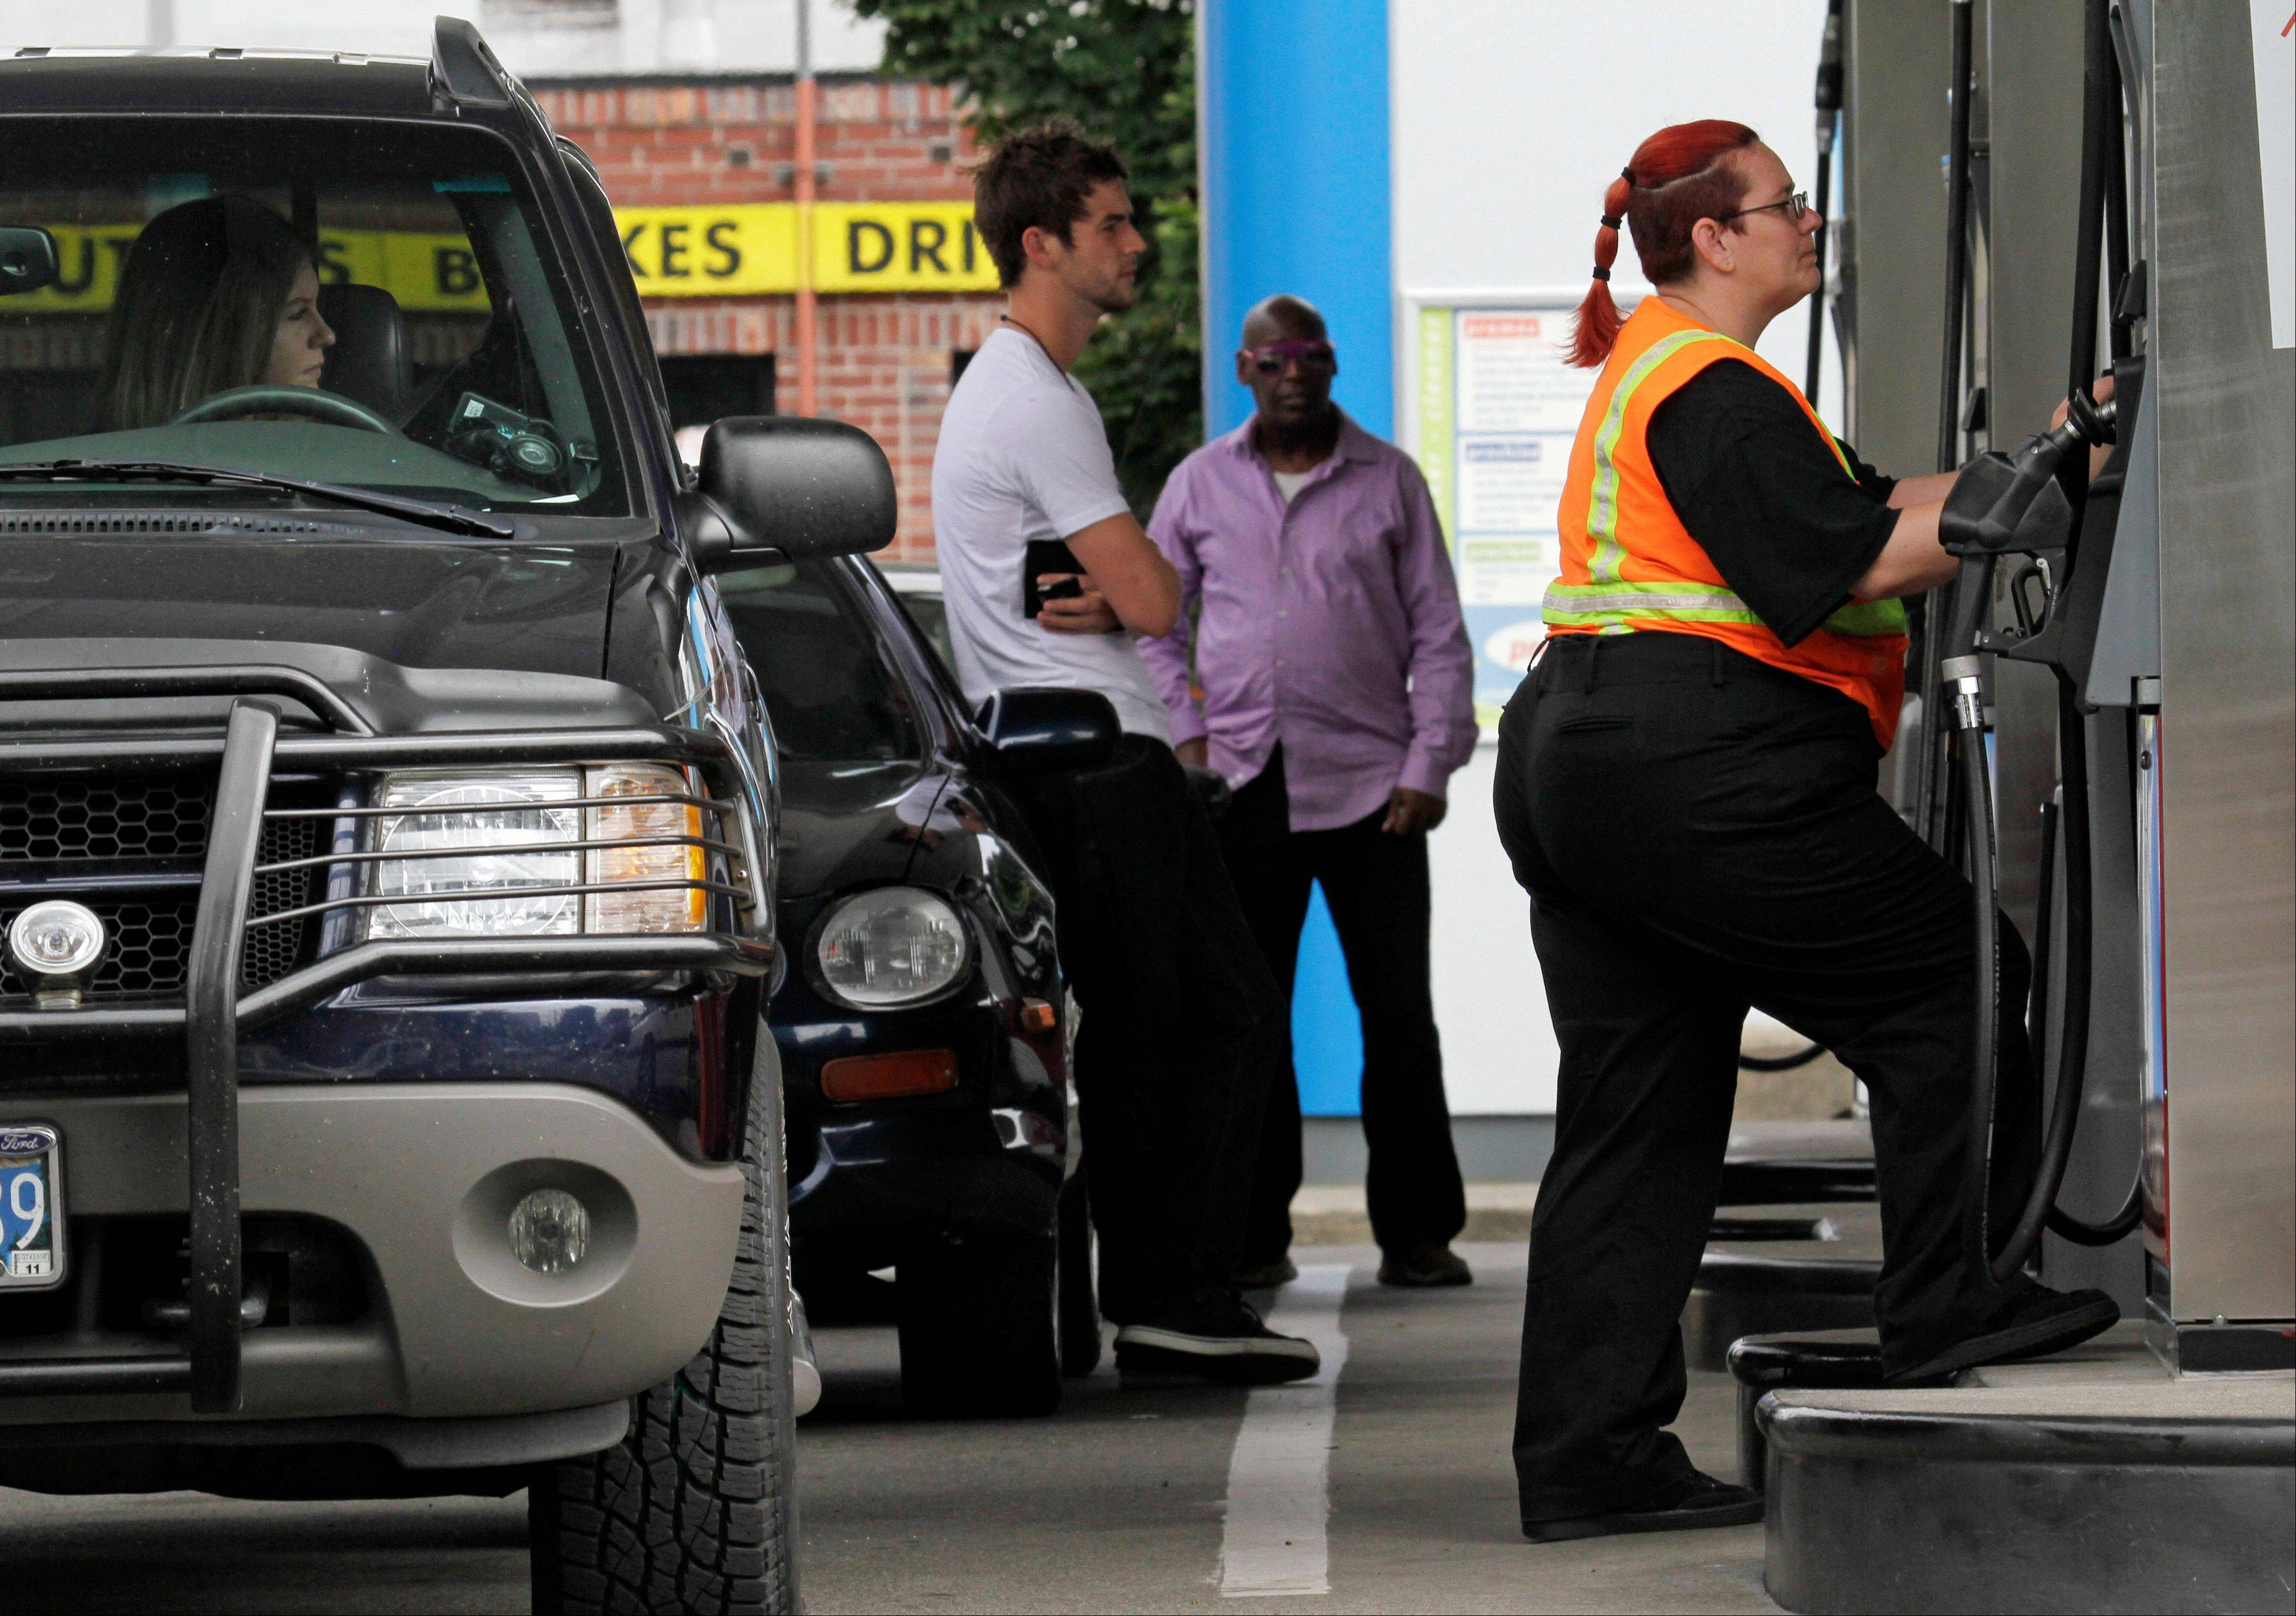 Customers stand in line as Jaqueline Henderson, right, prepares to pump gas at a station in Portland, Ore. President Barack Obama and top auto executives unveiled details of a compromise to slash the amount of gasoline cars and trucks will need down the road. The deal will double fuel economy standards to 54.5 miles per gallon by 2025 and further restrict the tailpipe emissions blamed for global warming.